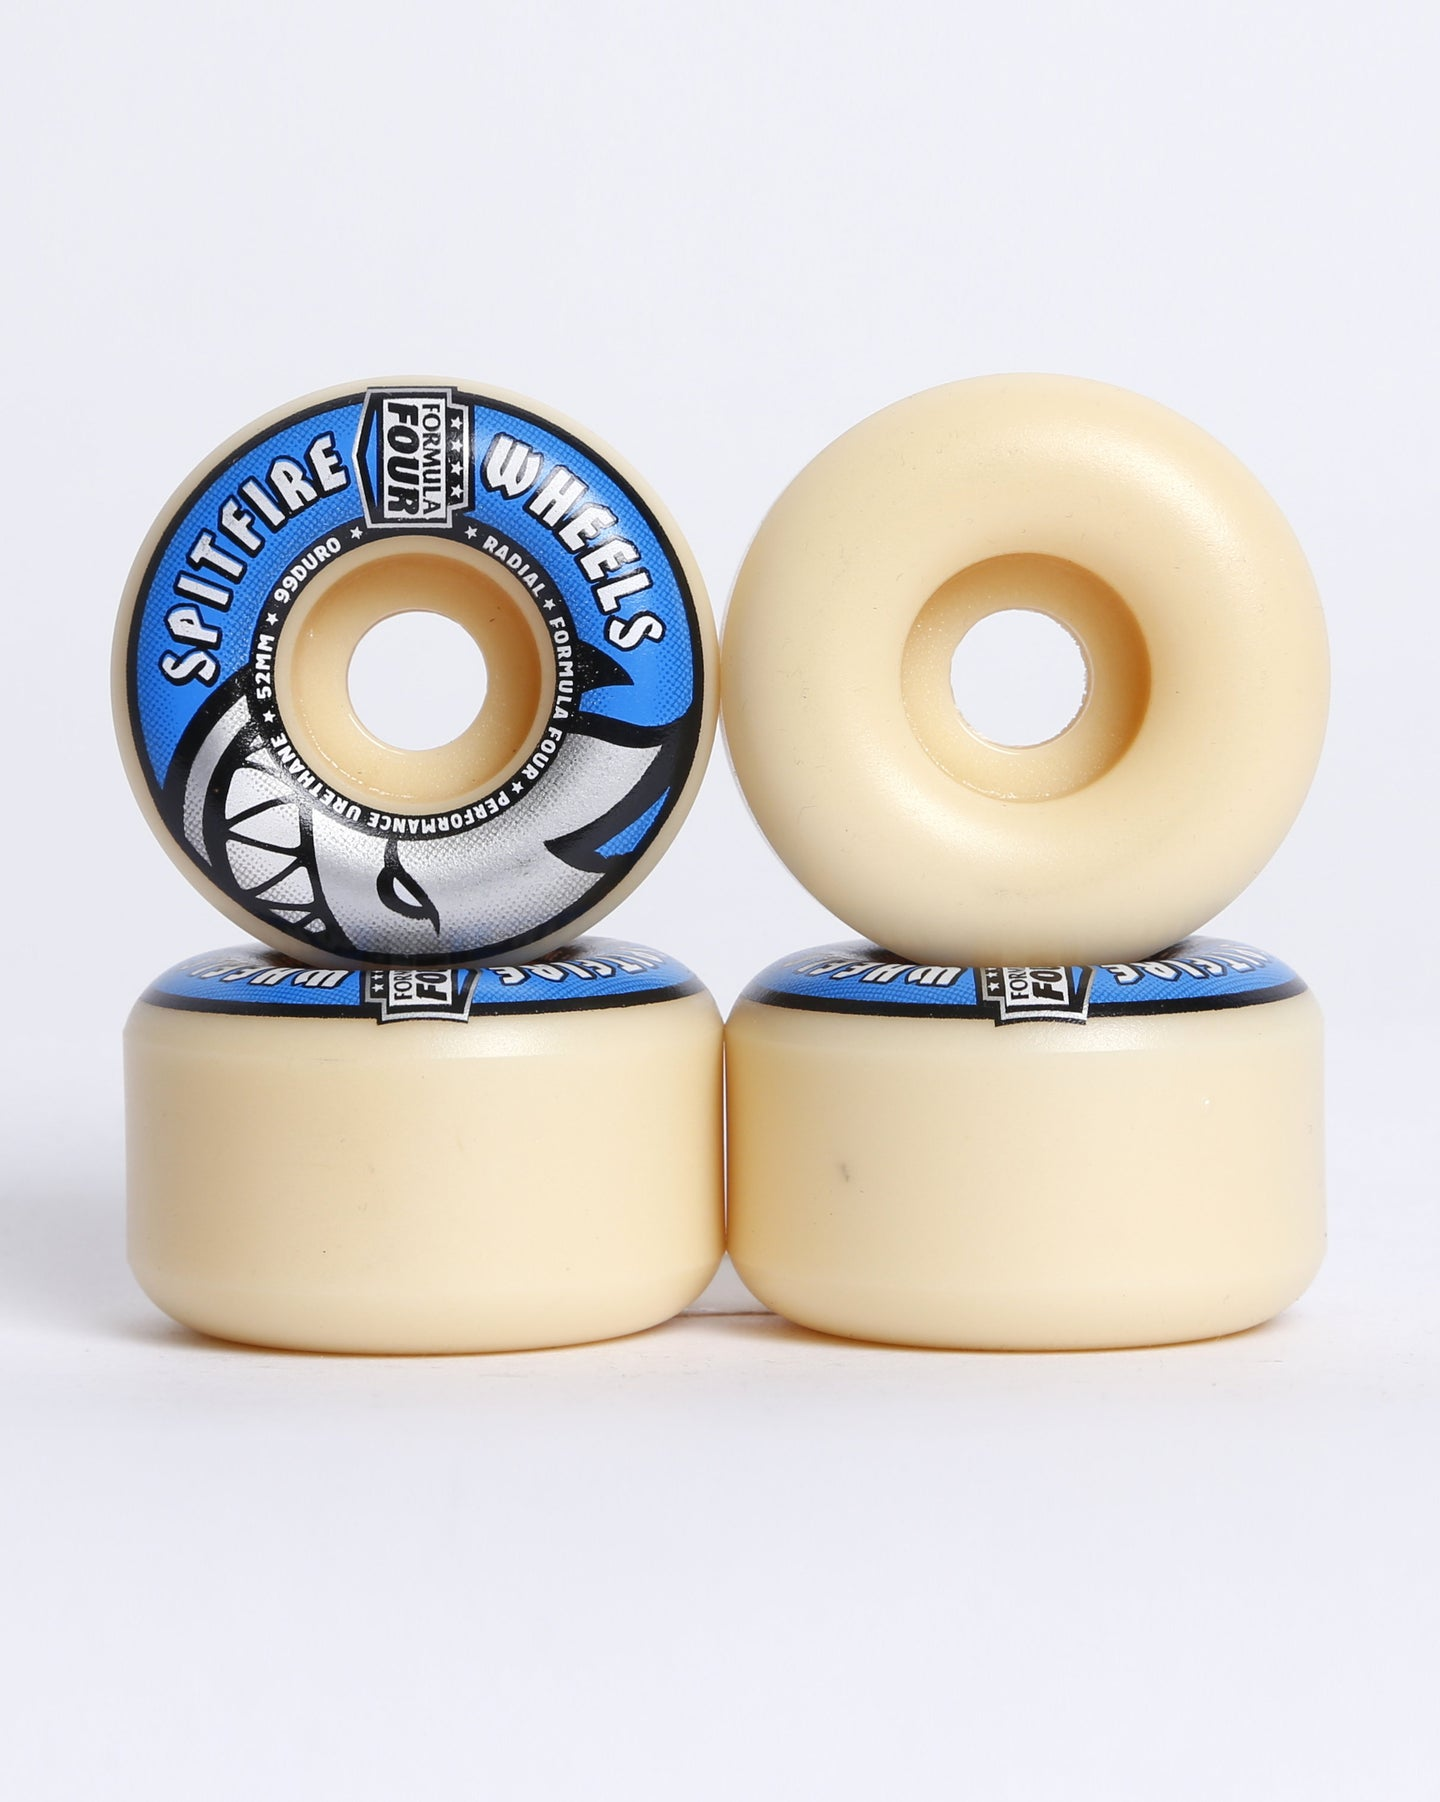 Spitfire F4 Radial 99DU Wheels 52mm